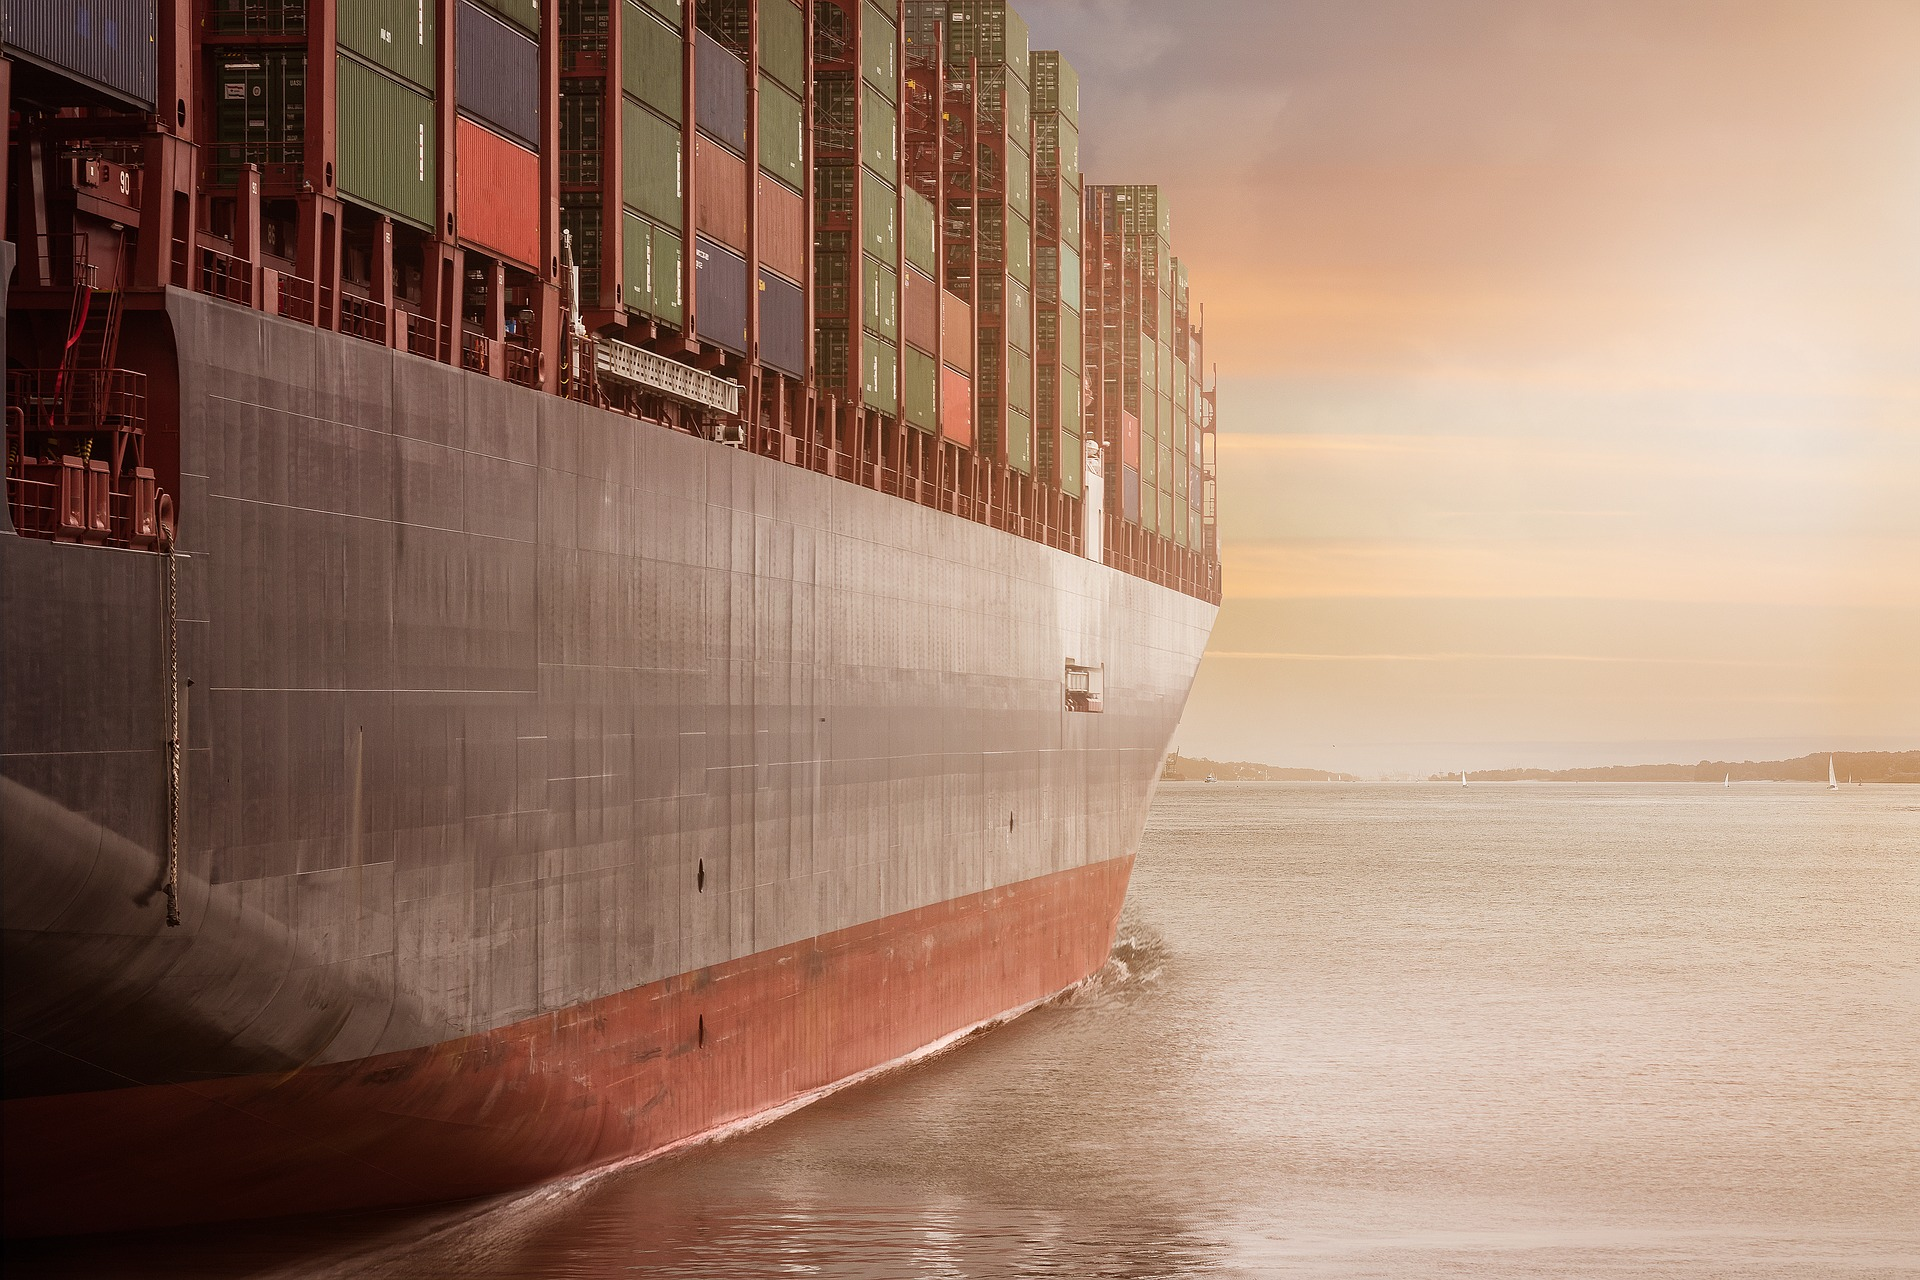 container-1611490_1920-Image by Alexander Kliem from Pixabay